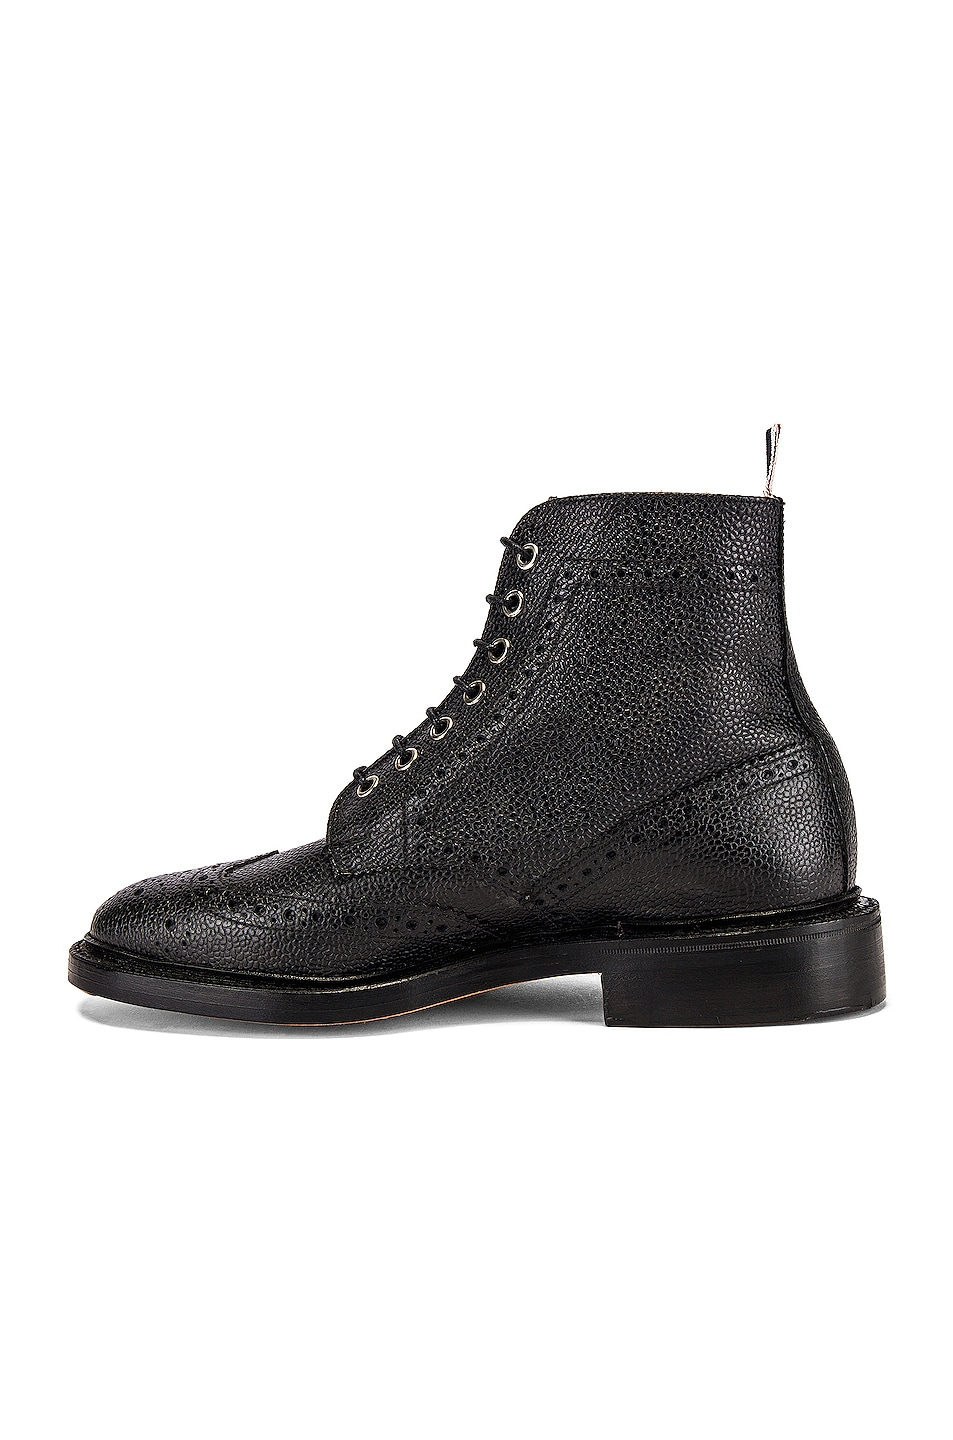 Image 5 of Thom Browne Wingtip Leather Boots in Black